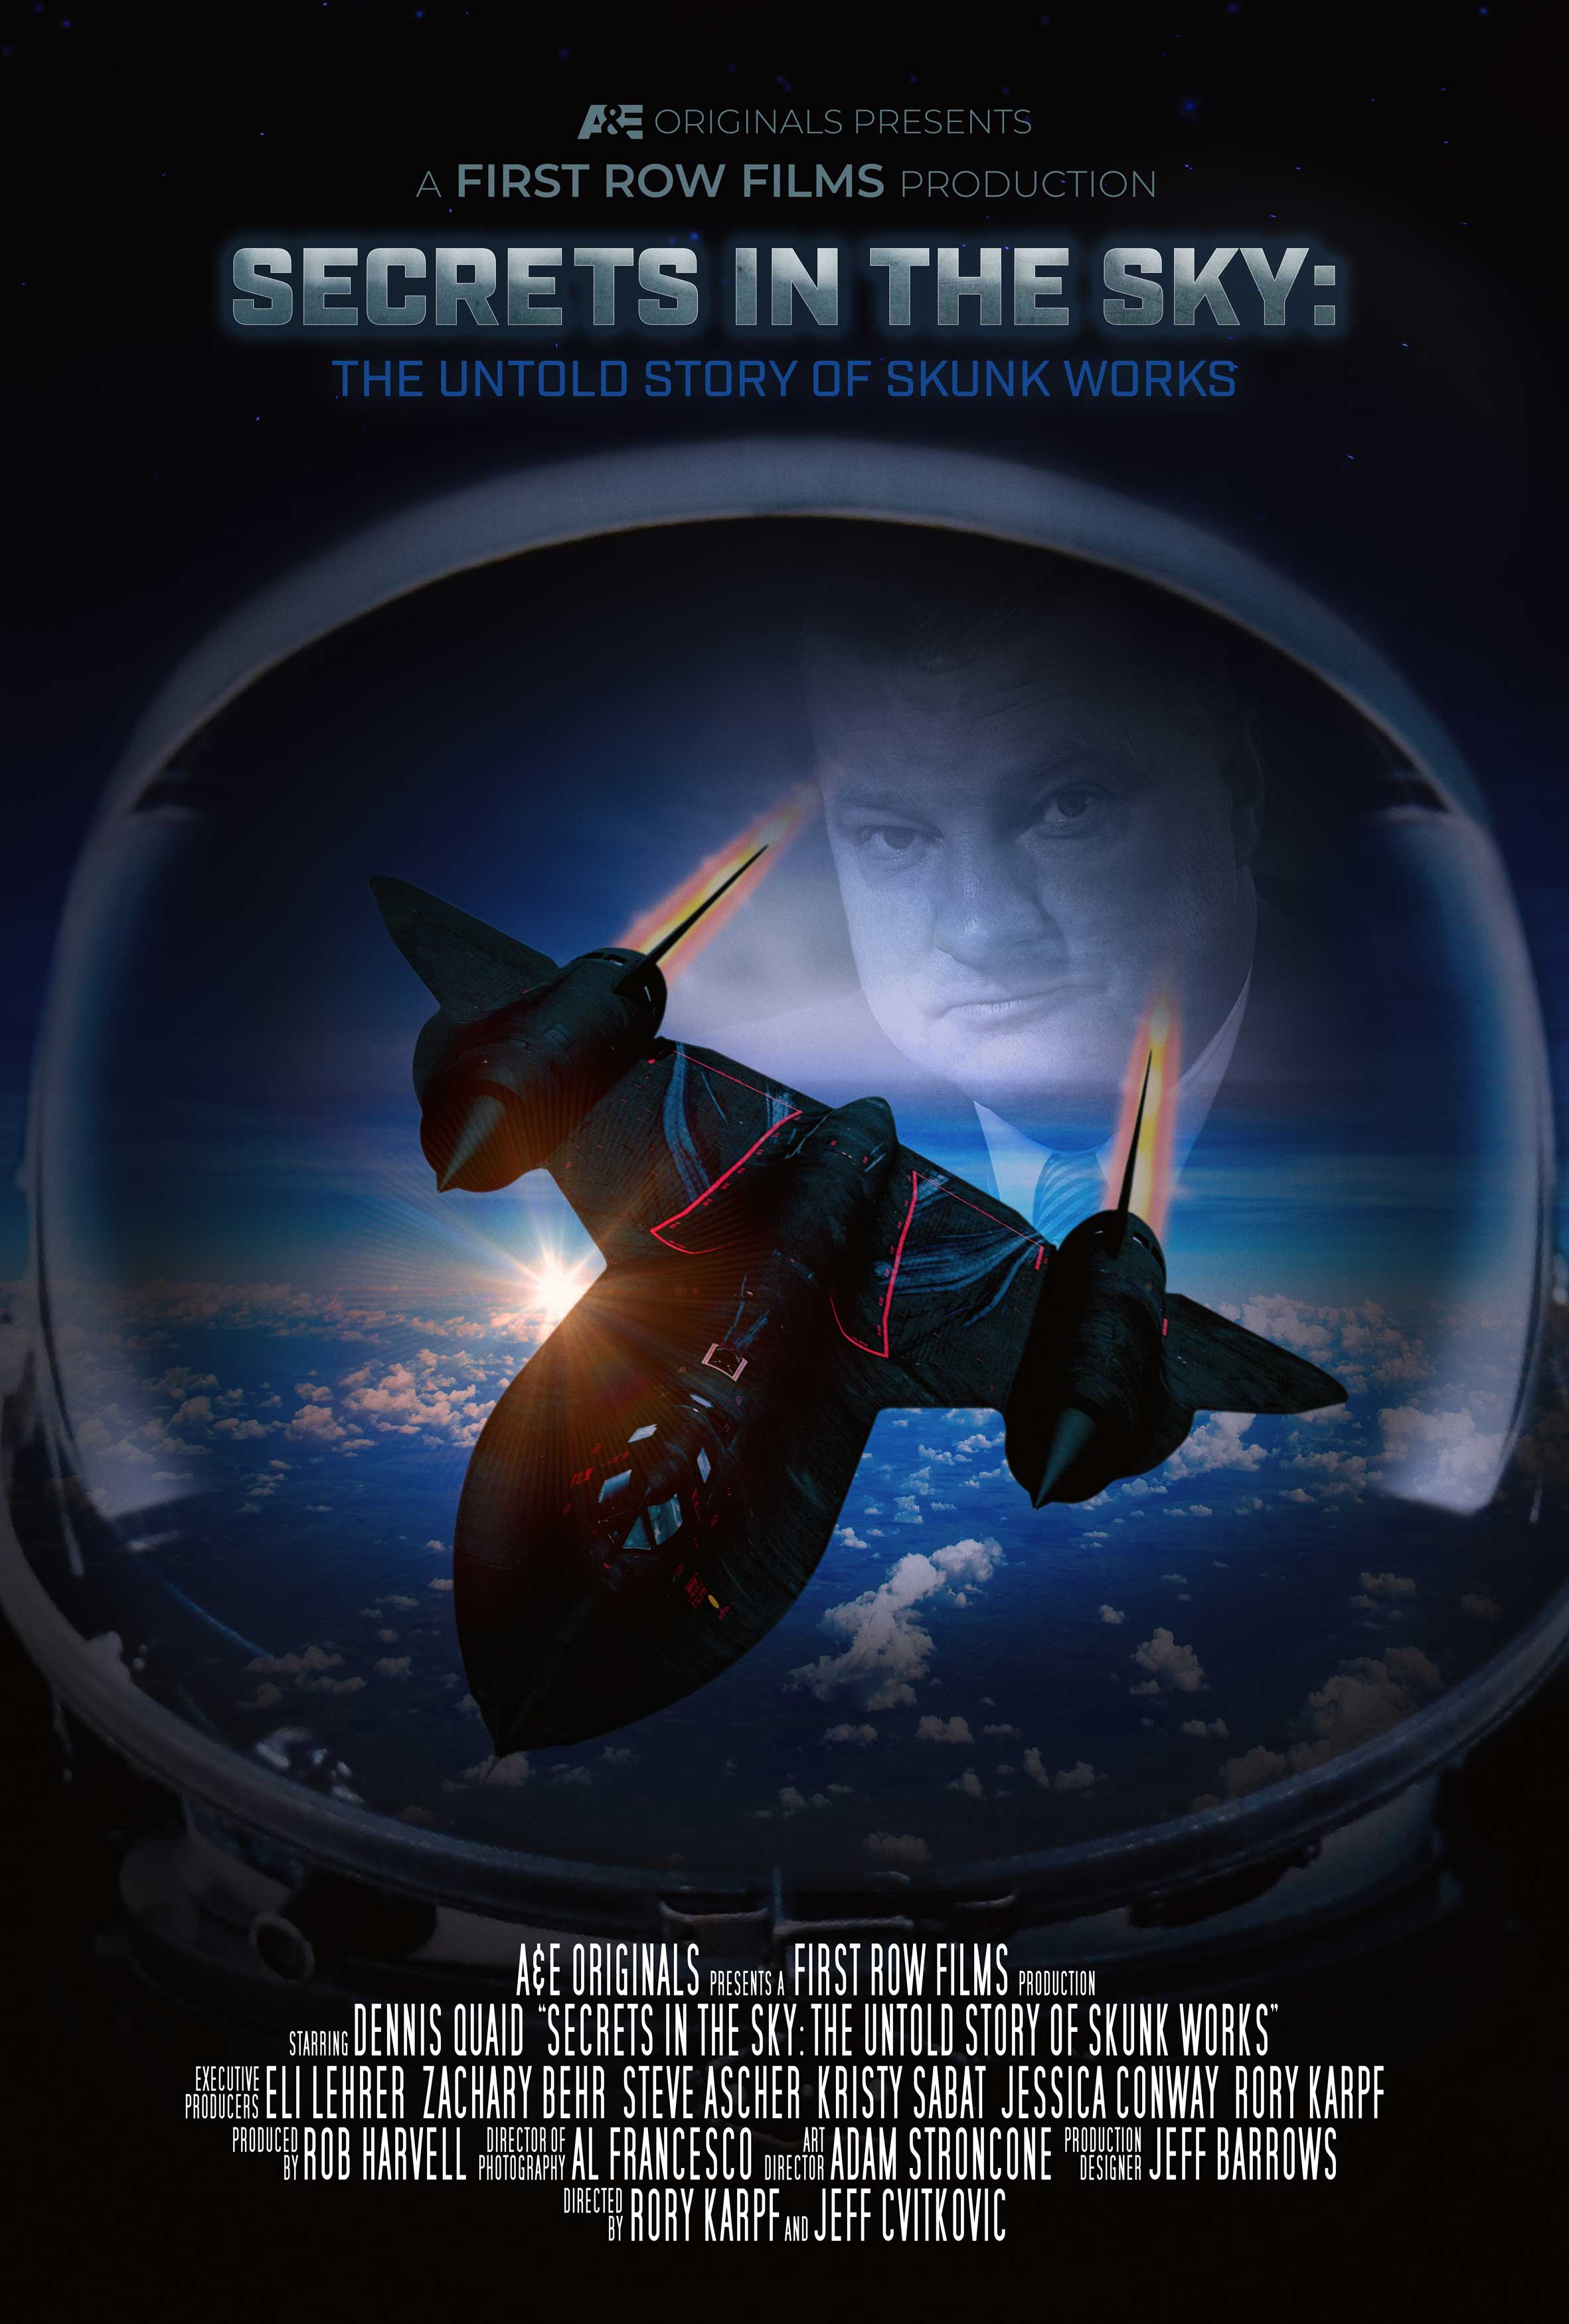 Nonton movie indonesia Secrets in the Sky: The Untold Story of Skunk Works Online Gratis | Film Lk21 blue